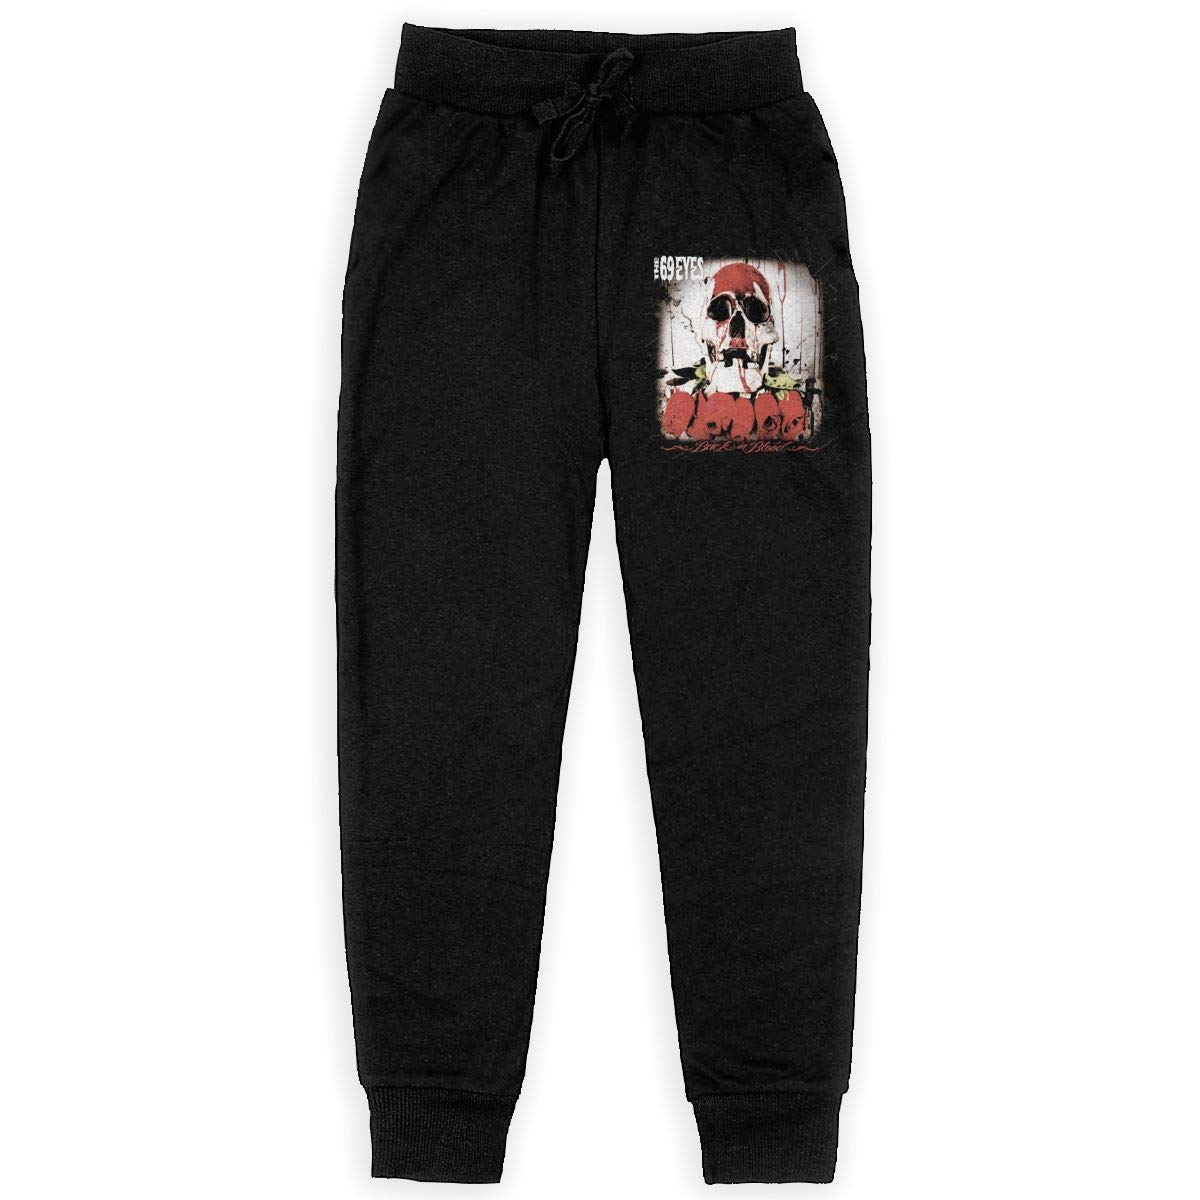 Unisex Young The 69 Eyes Back in Blood Elastic Music Band Fans Daily Sweatpants for Boys Gift with Pockets